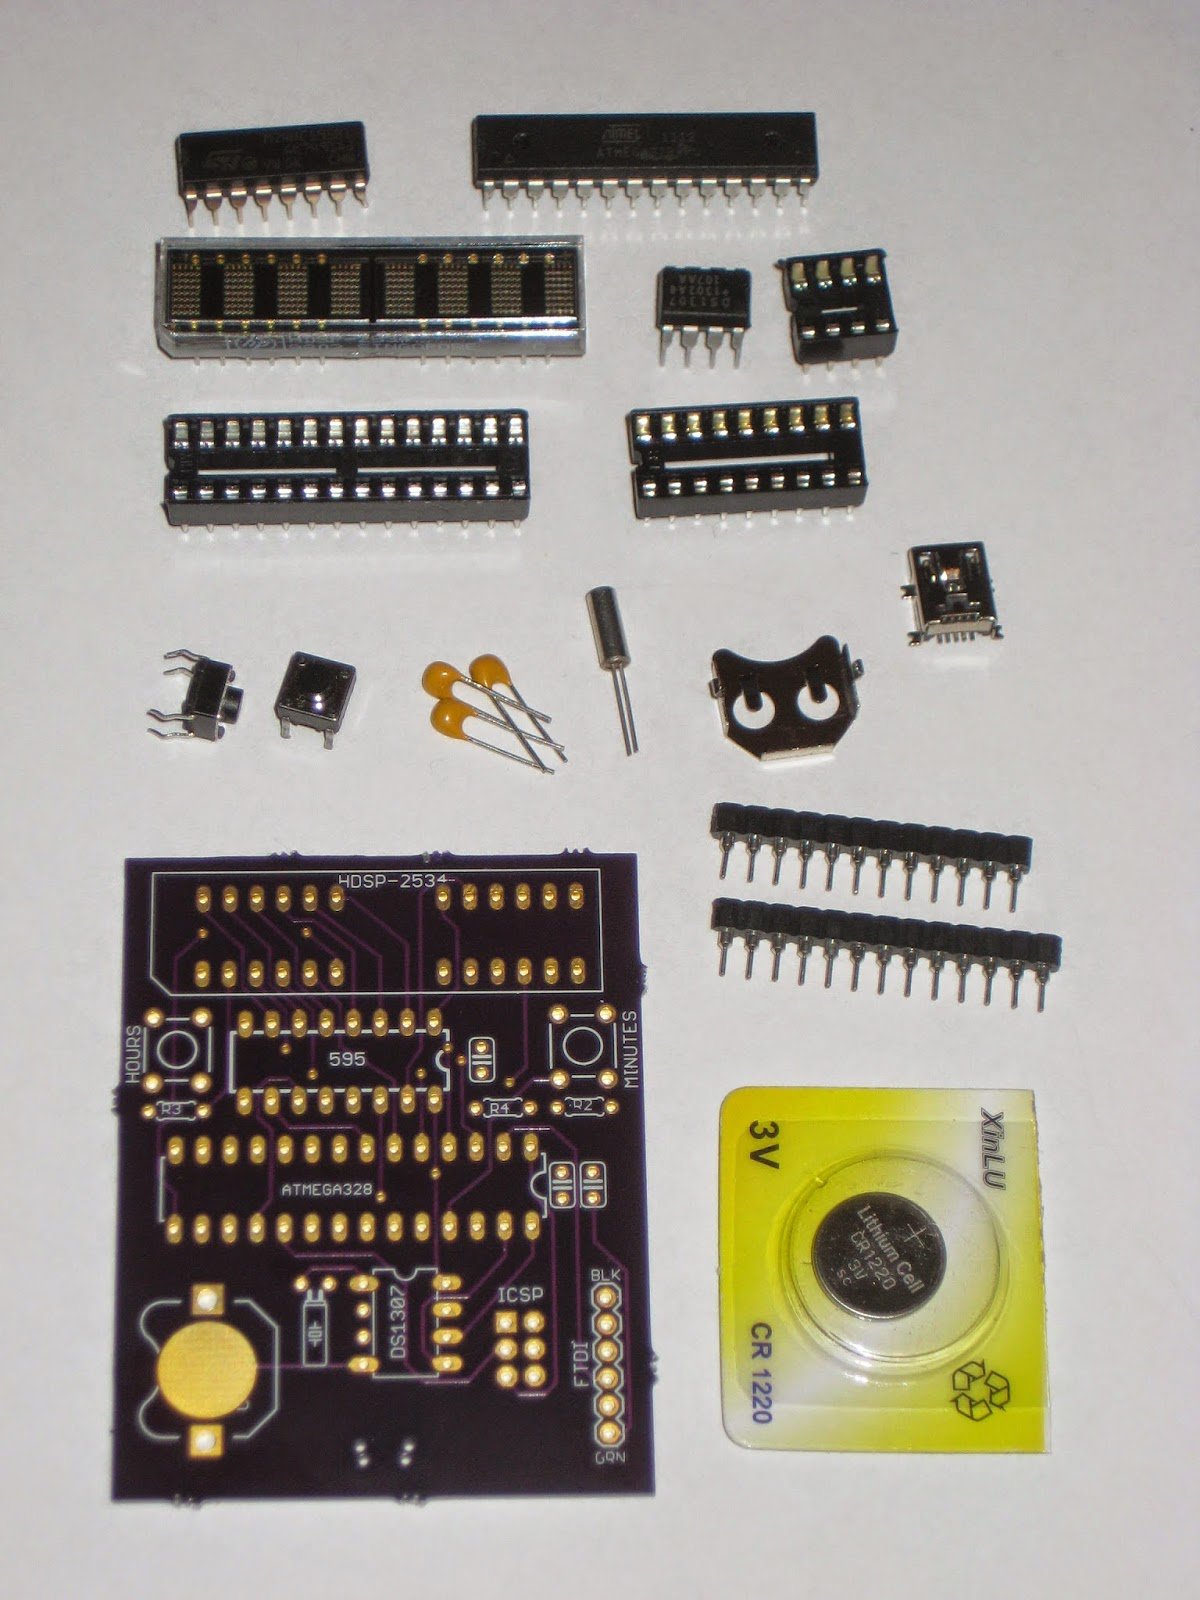 Wise Time With Arduino New Kit In Store Simple Clock Hdsp Electronic Circuit Board Diy The Includes Following Components Pcb Atmega328p Bootloader And Fuses For 8mhz Internal